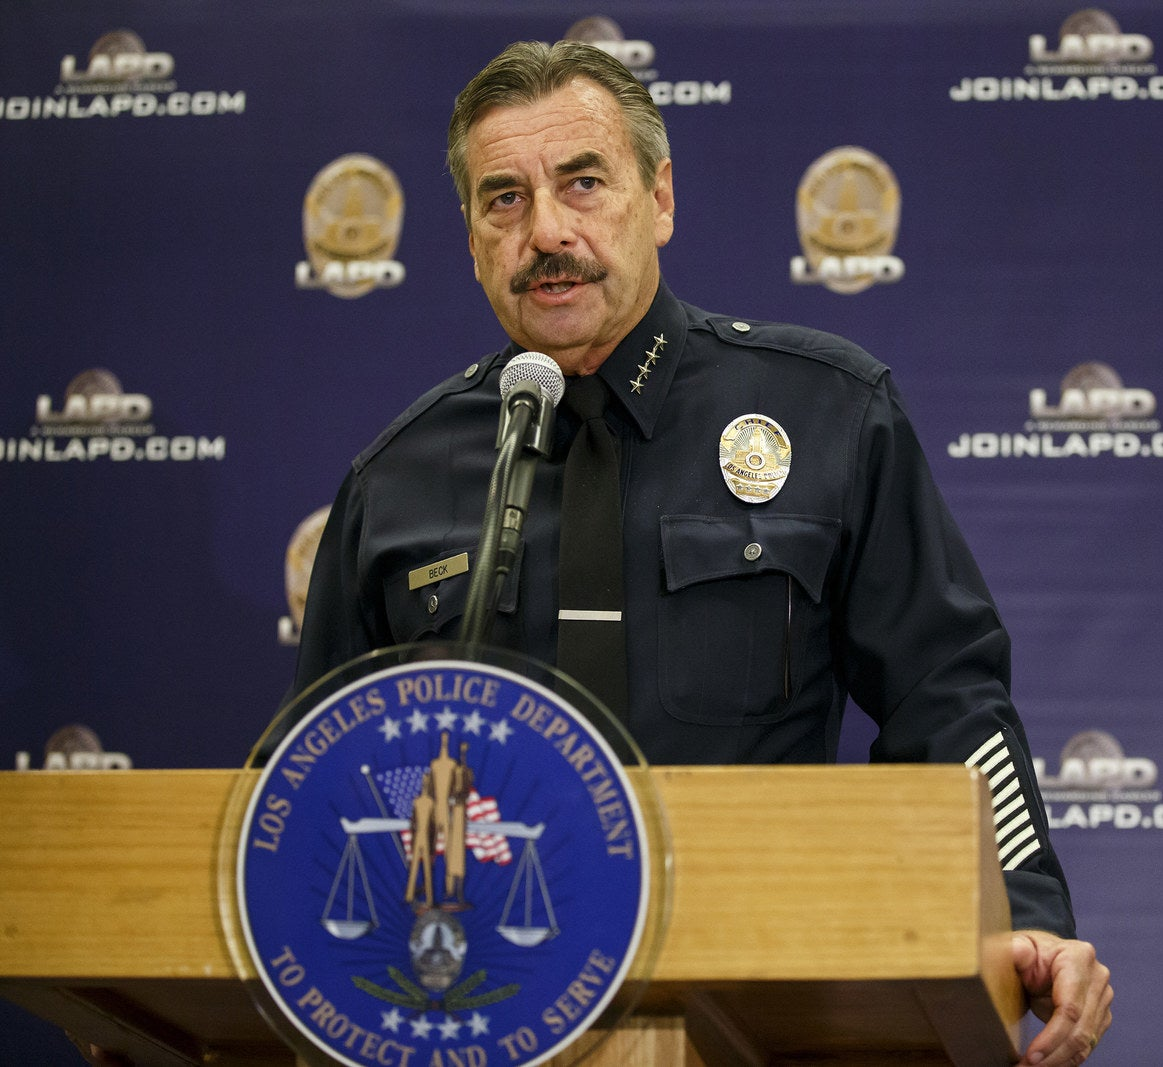 Chief Charlie Beck speaks during a press conference in Los Angeles on Oct. 3.